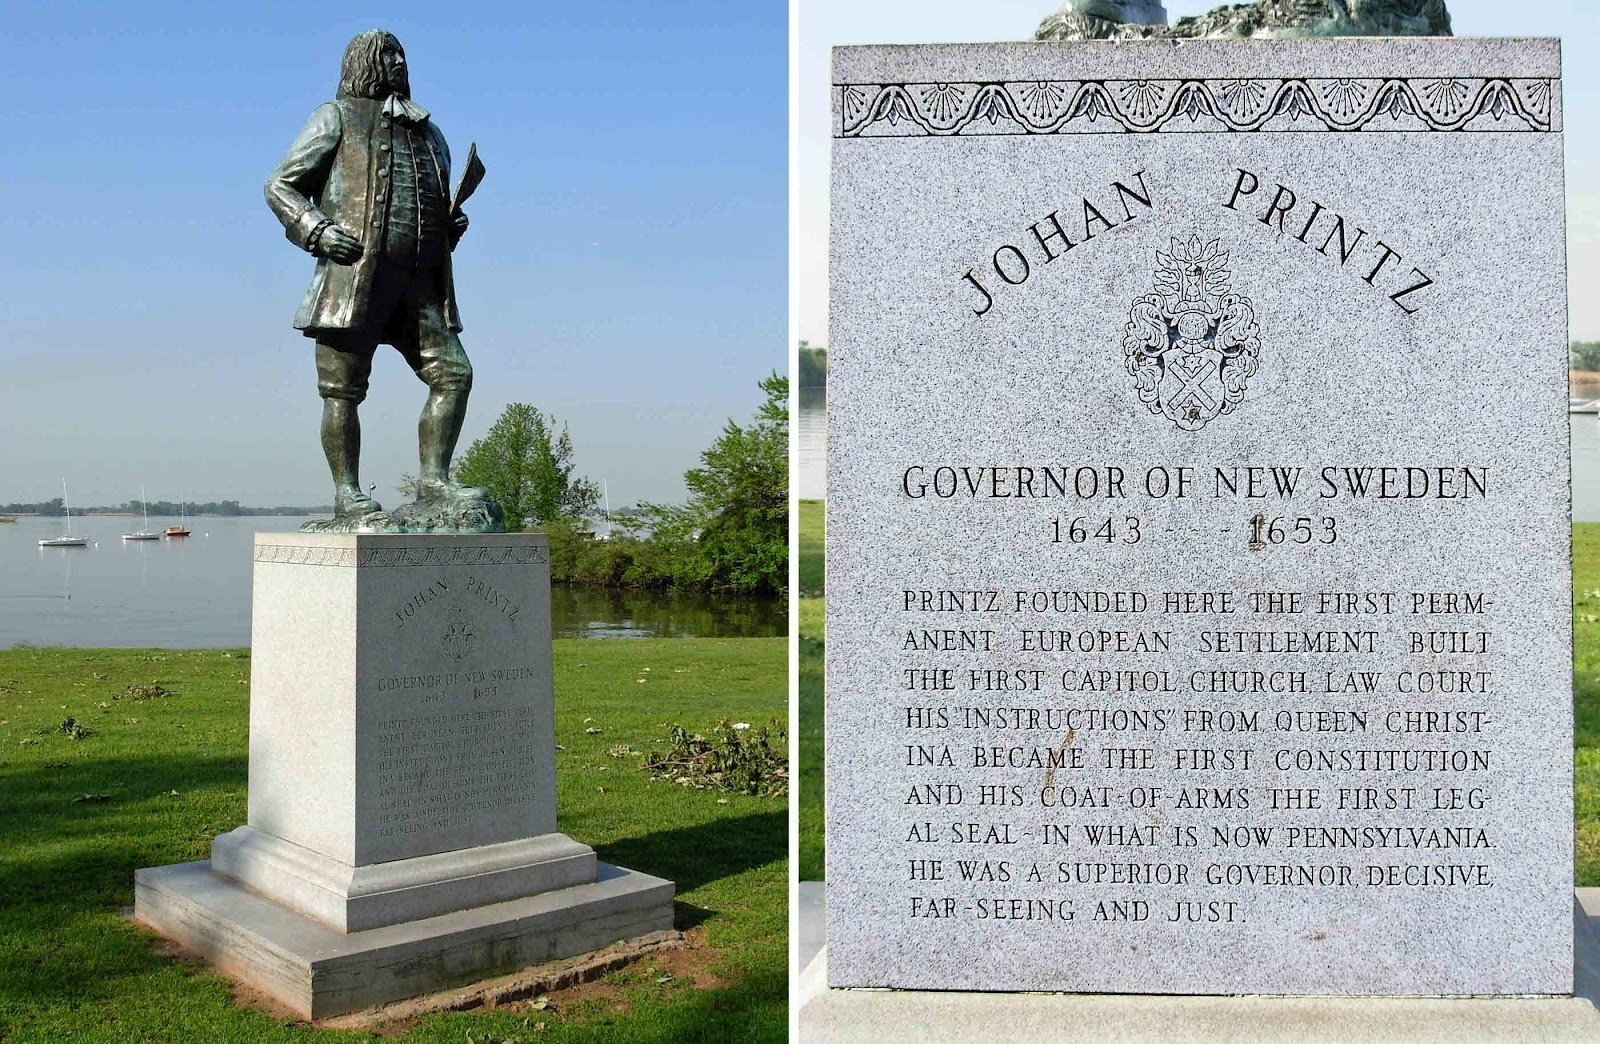 The statue of Governor Johan Printz and accompanying historical information.